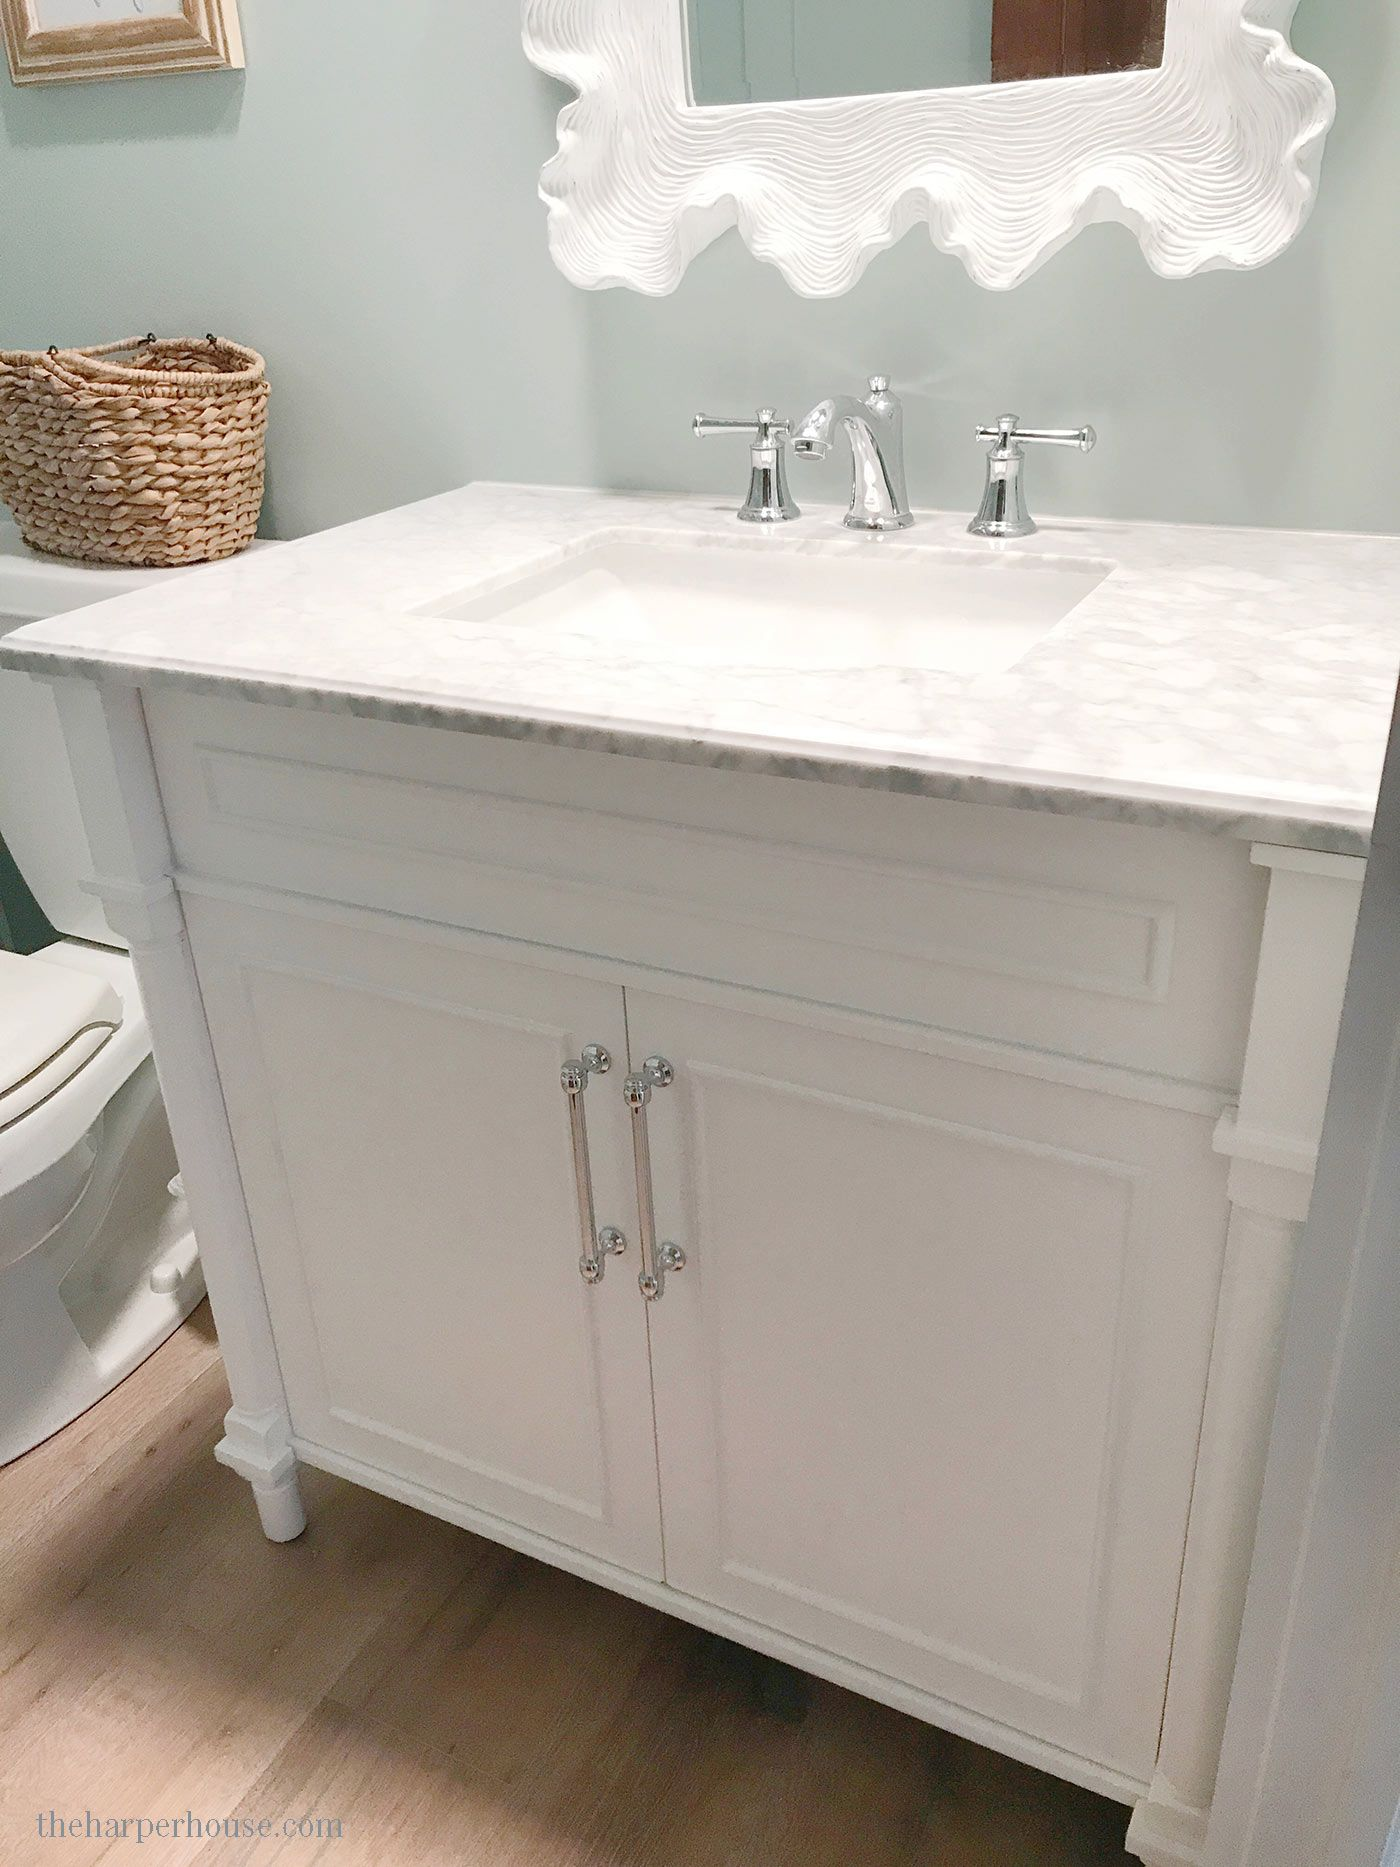 The Ultimate Guide To Buying A Bathroom Vanity Bathroom Vanity